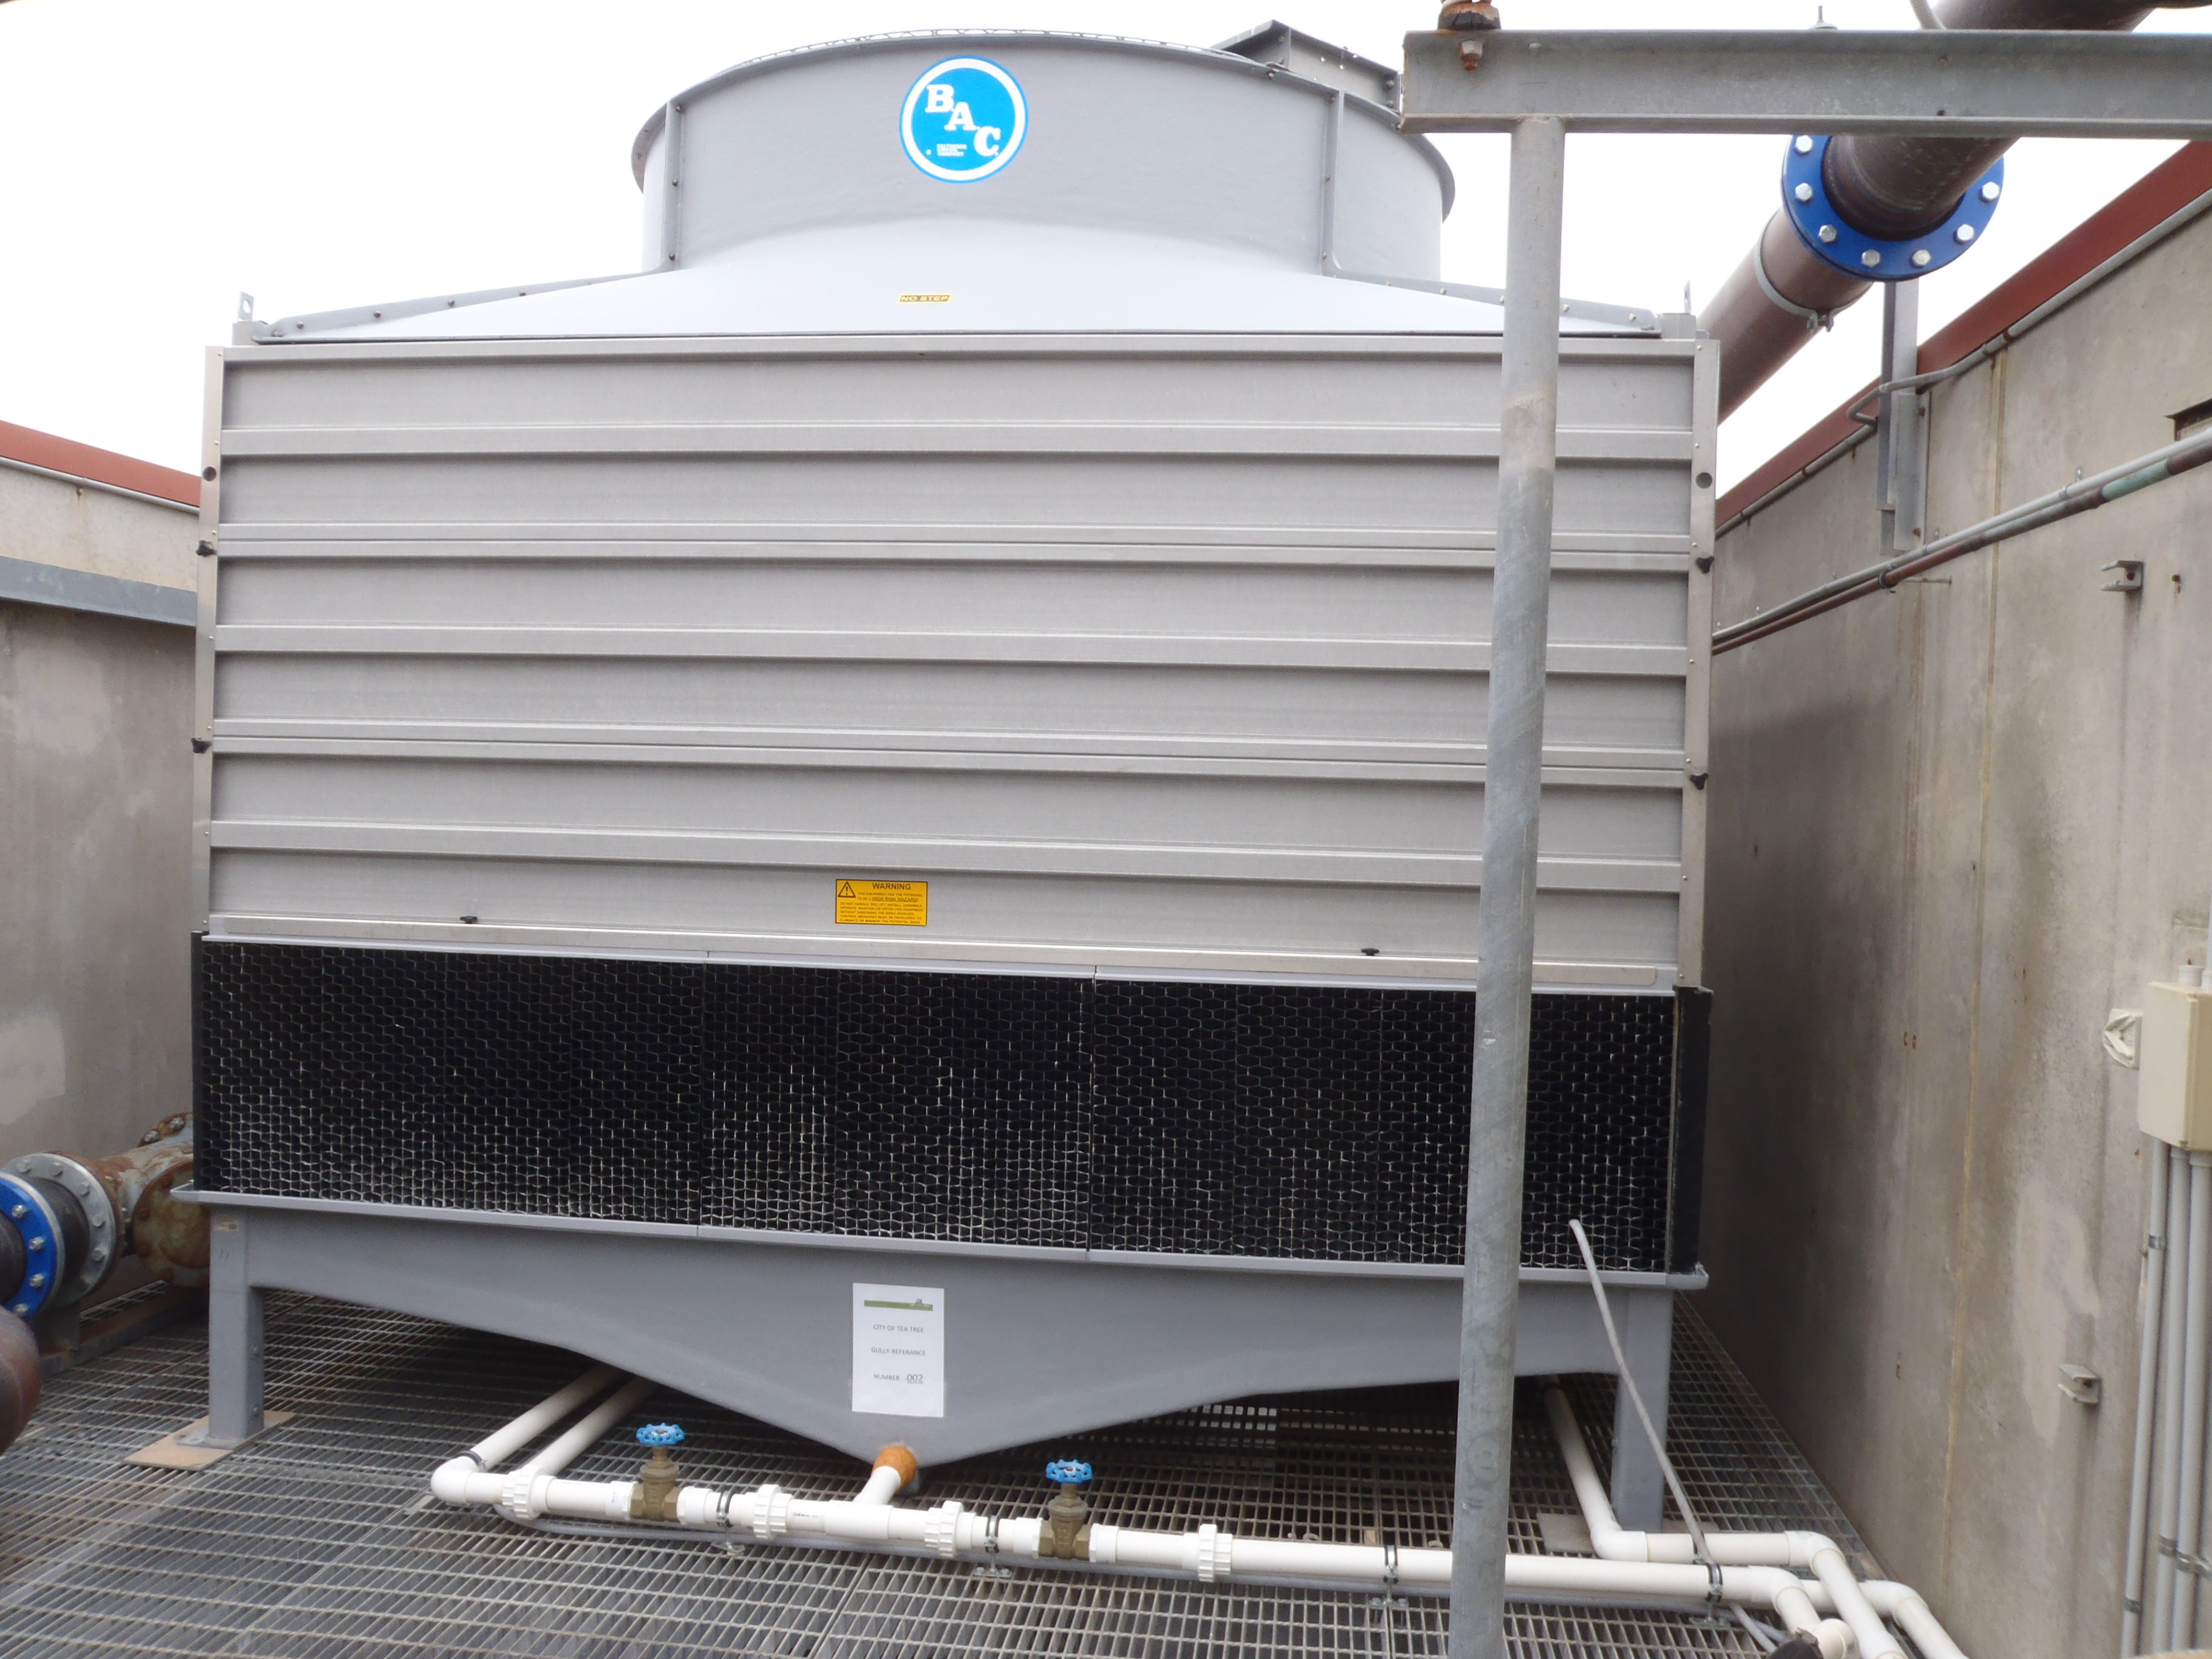 #36466A Cooling Tower Auditing Water Management Australia Pty Ltd Recommended 7167 Water Cooled Tower pics with 3968x2976 px on helpvideos.info - Air Conditioners, Air Coolers and more